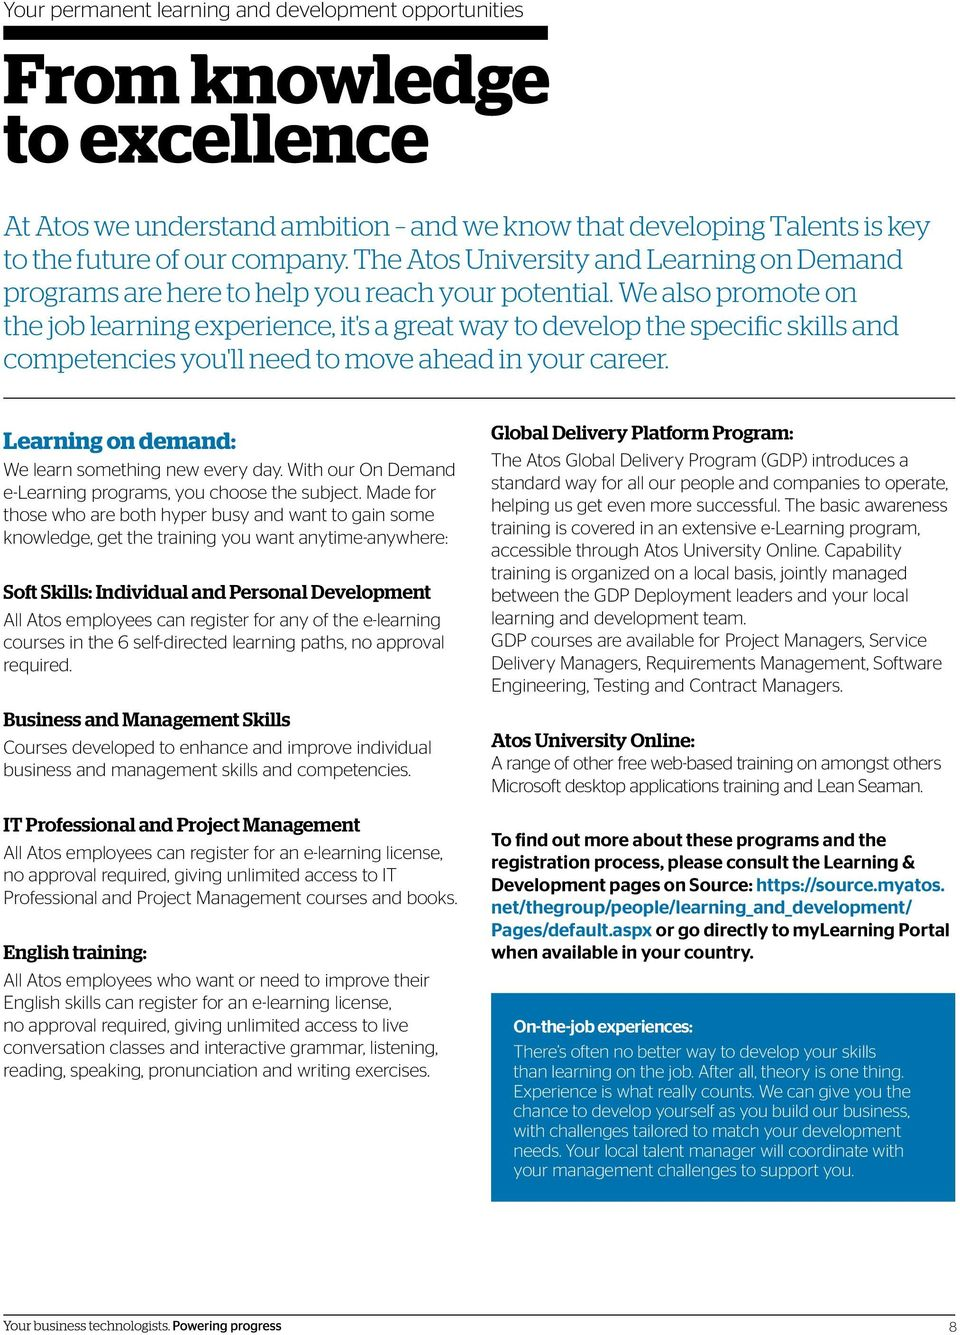 Discover the Atos Talent program to take you from job to